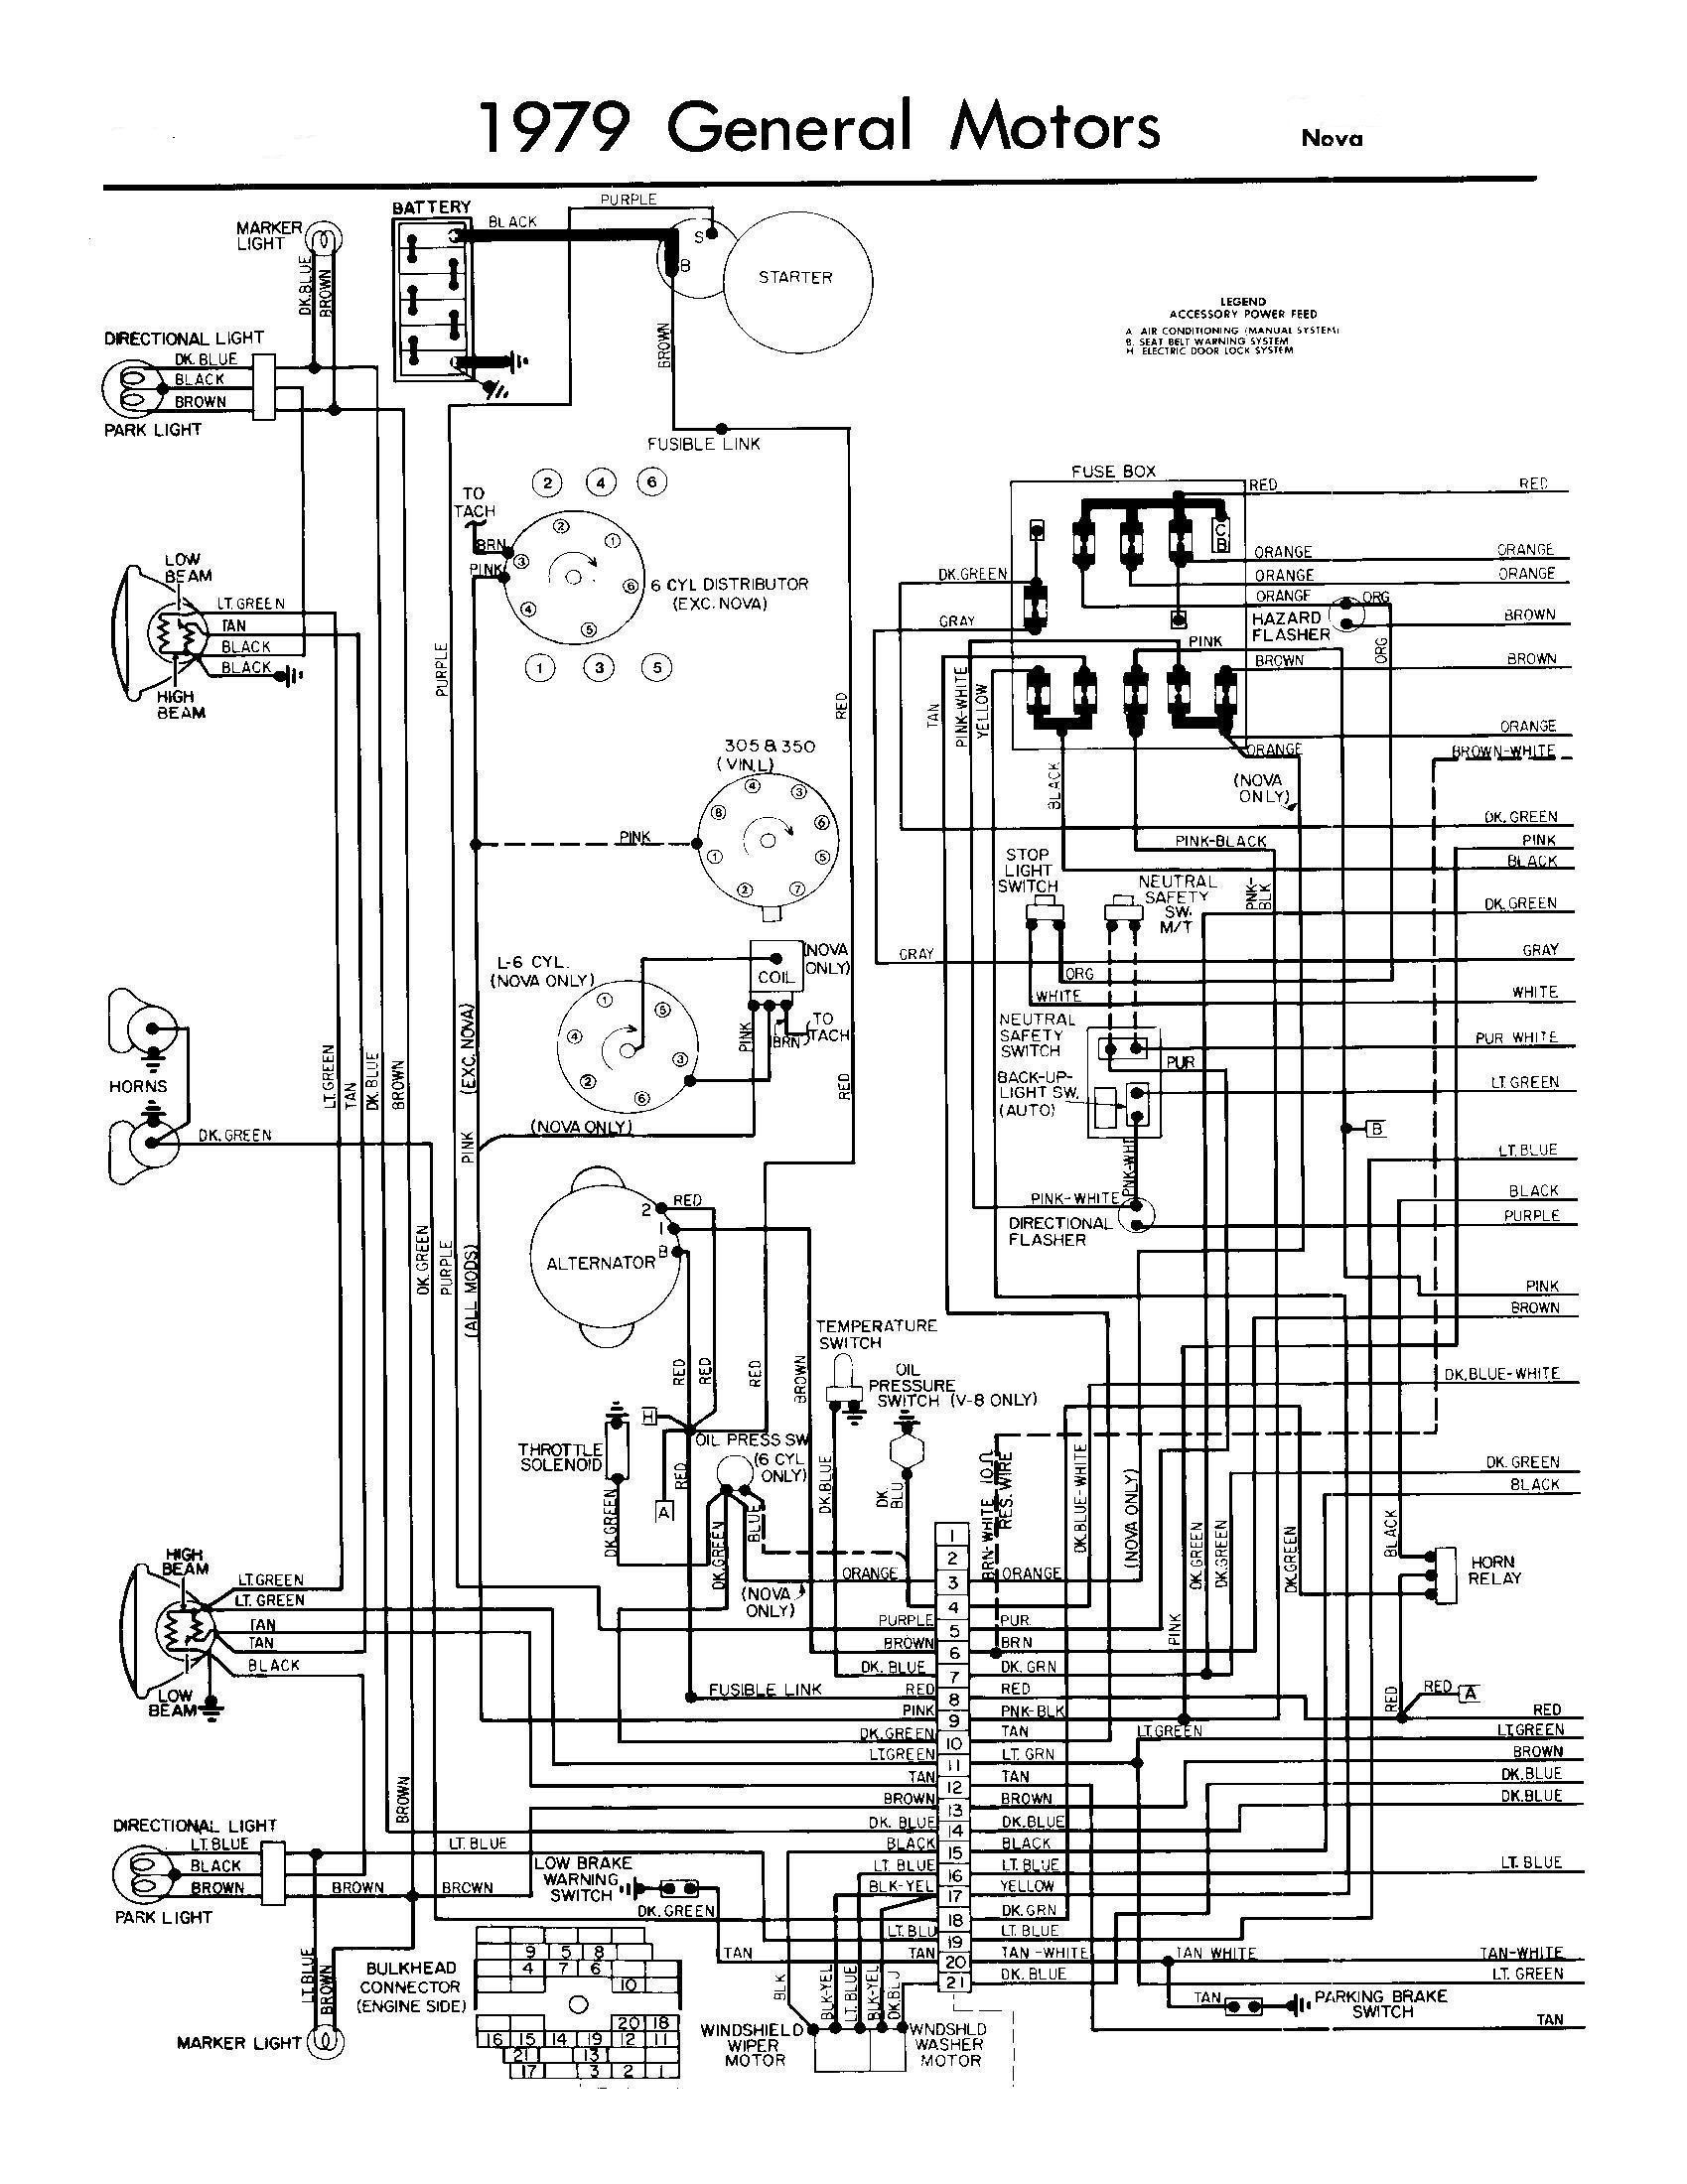 1970 chevy truck heater control diagram wire data schema u2022 rh lemise co 93 Chevy Truck Wiring Diagram 1986 Chevy Truck Wiring Diagram